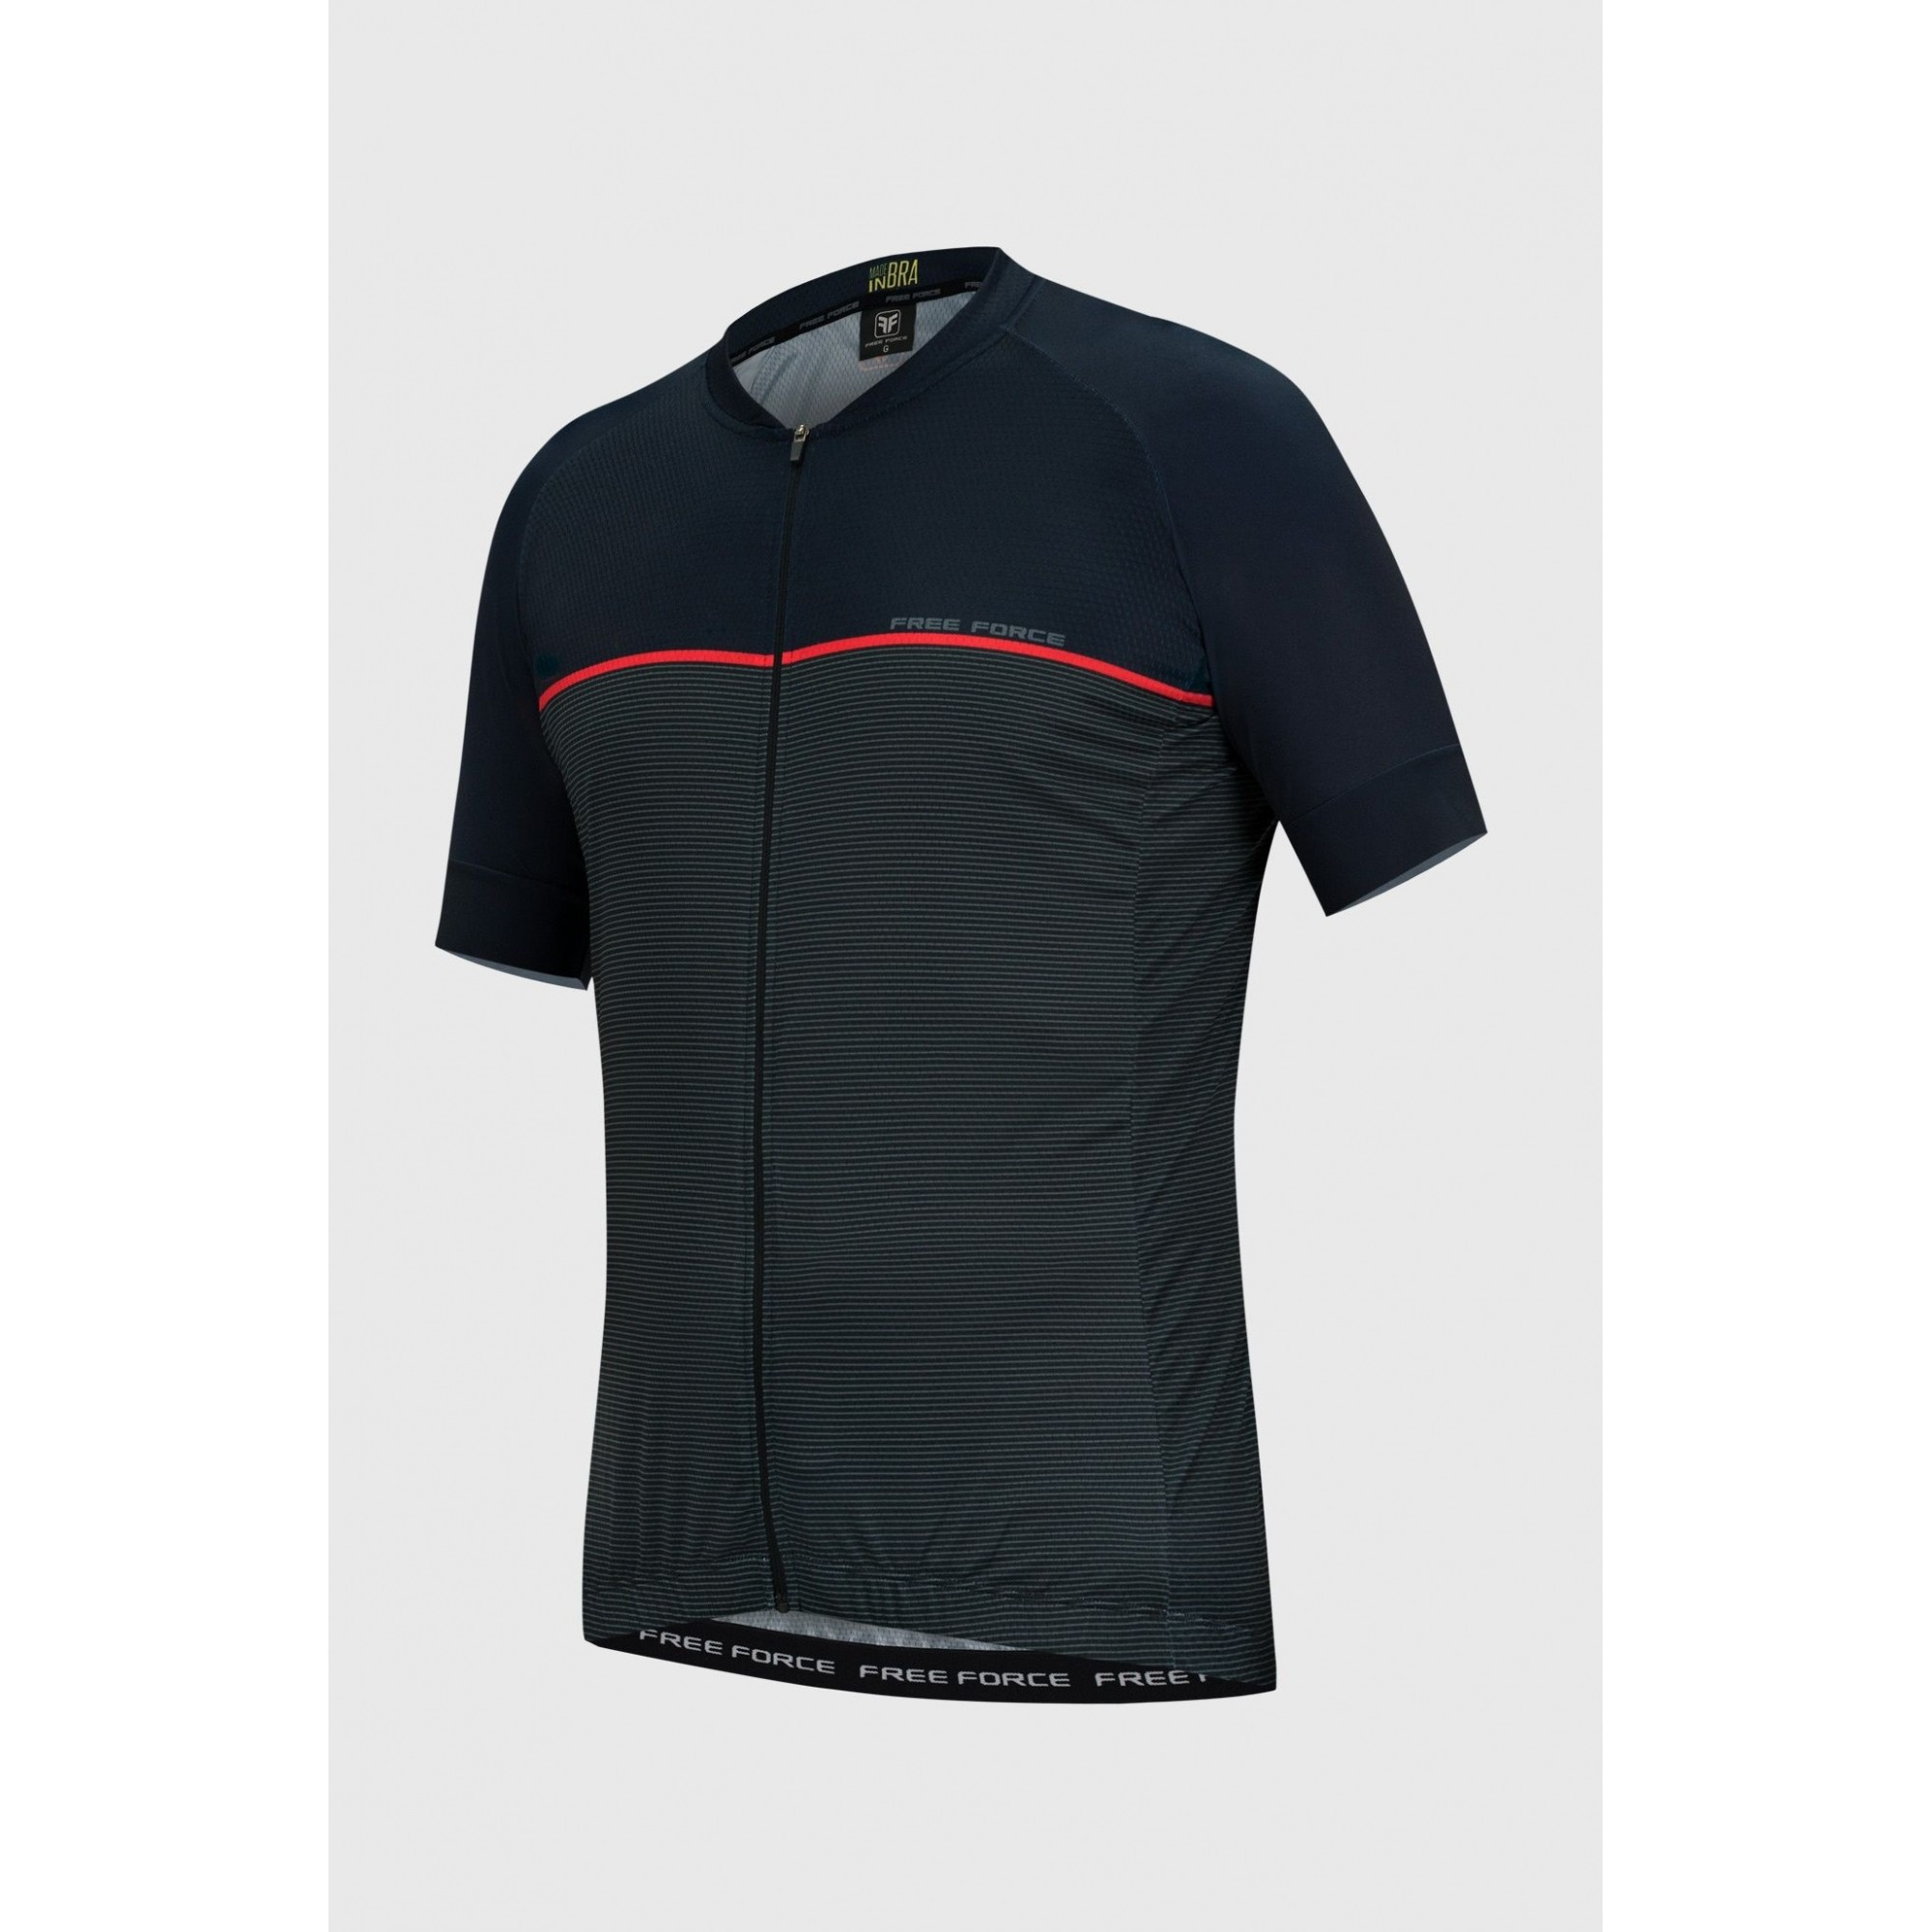 Camisa de Ciclismo Masculino Free Force Sailor